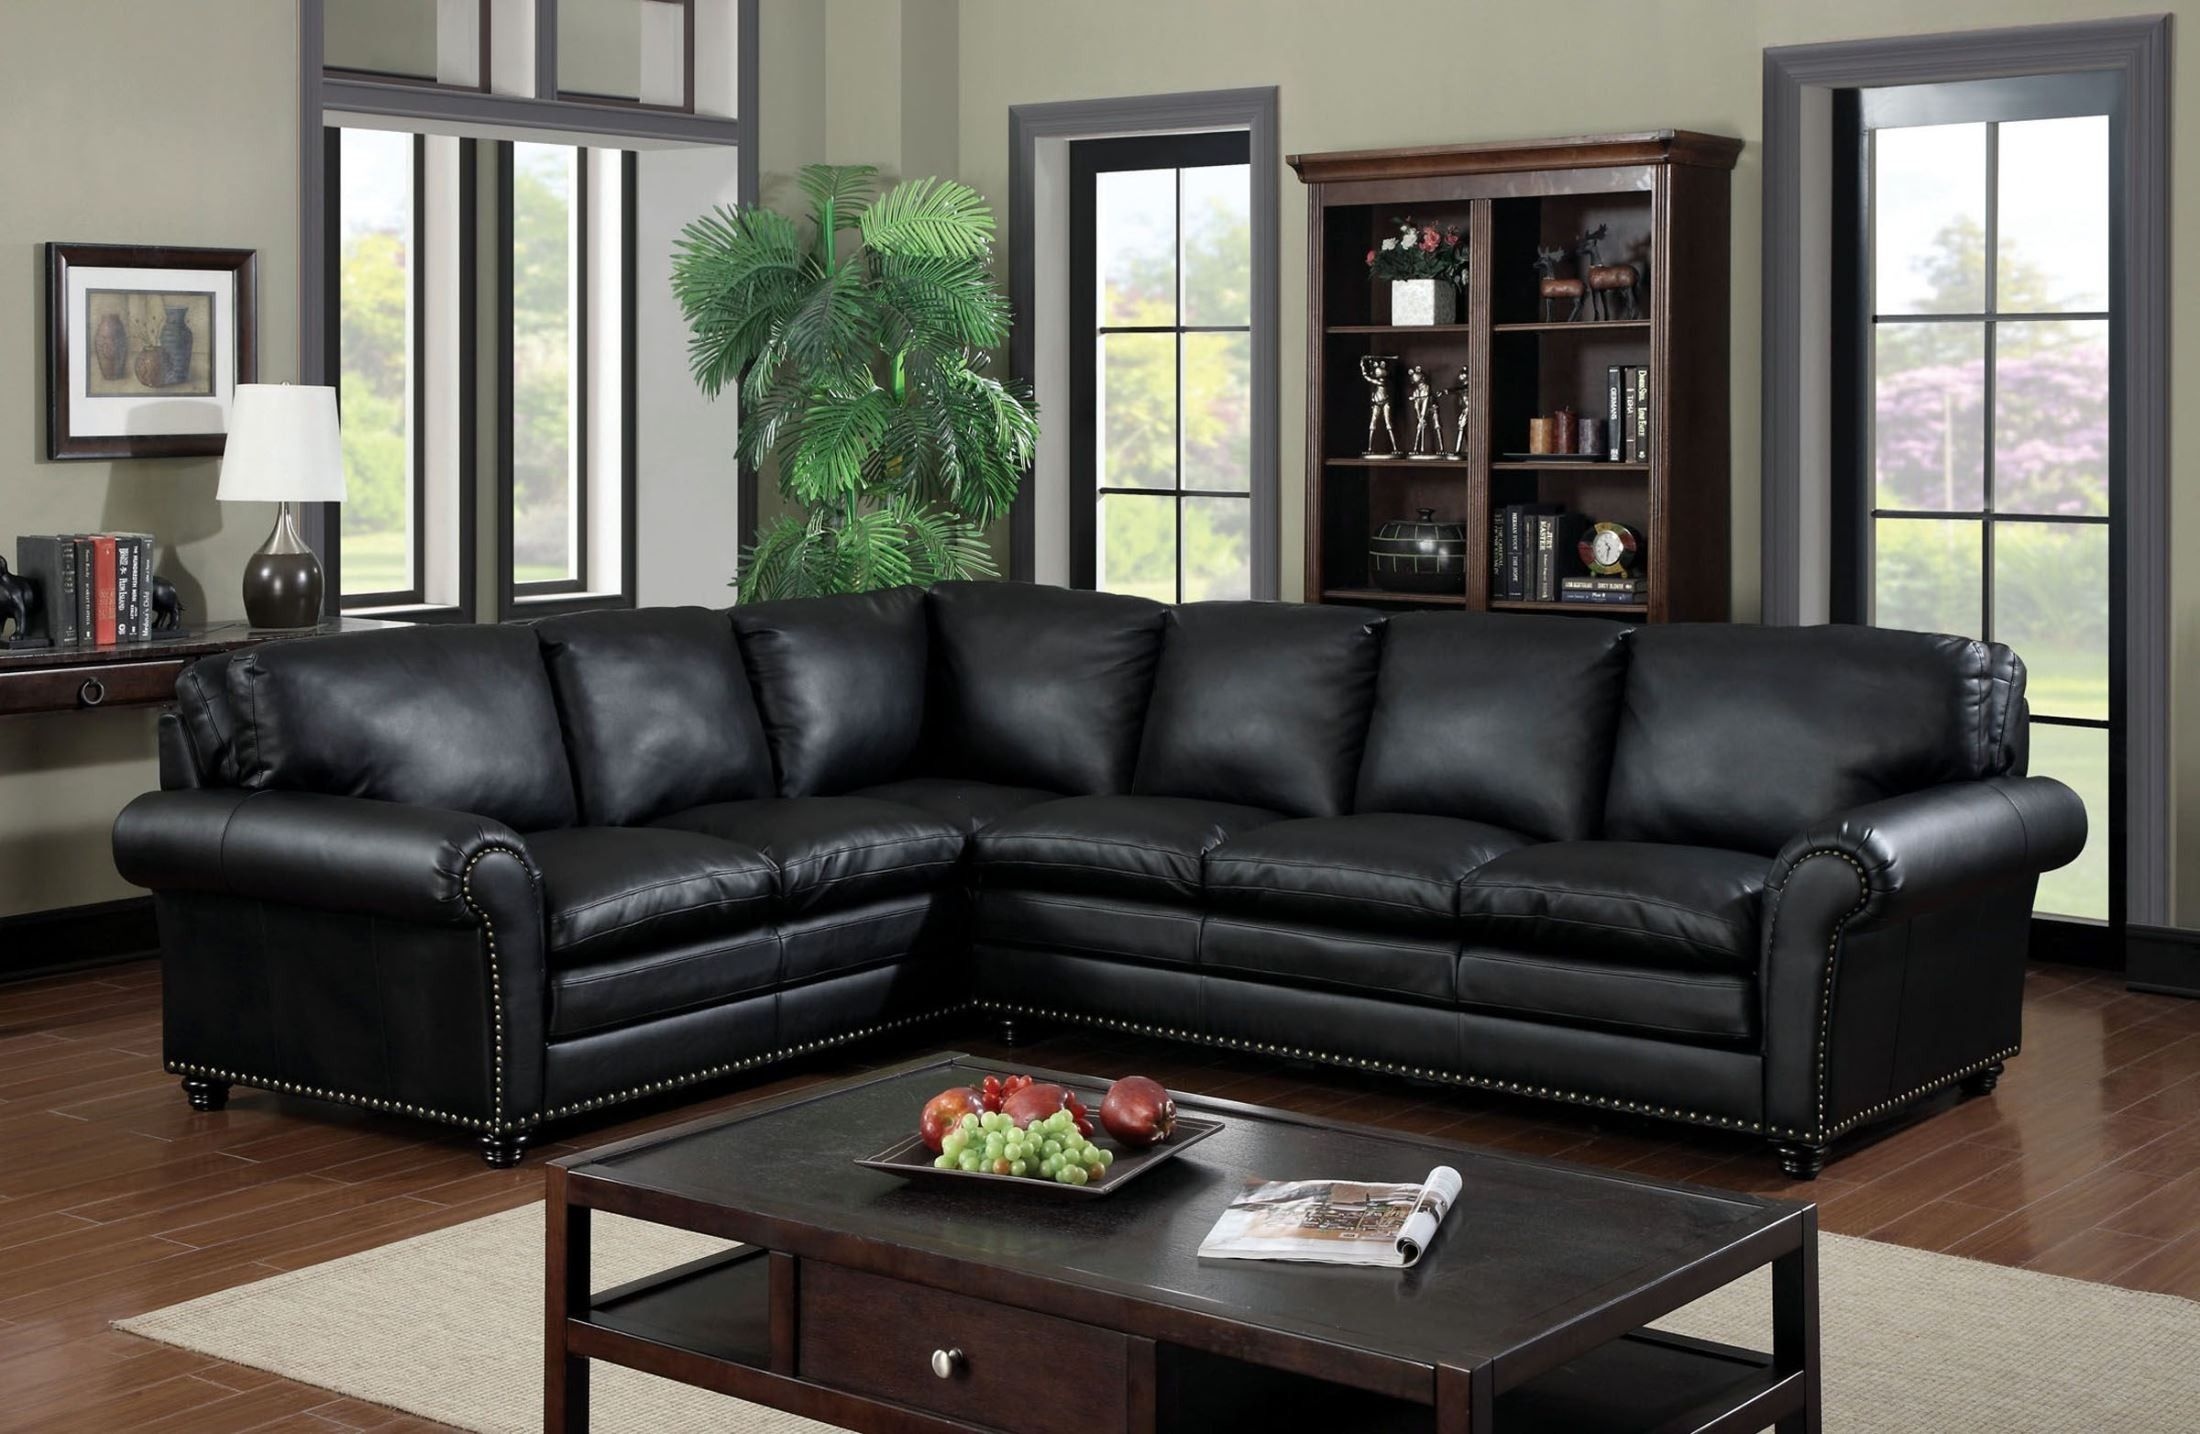 Bring a sense of fort with this corner sofa set which features